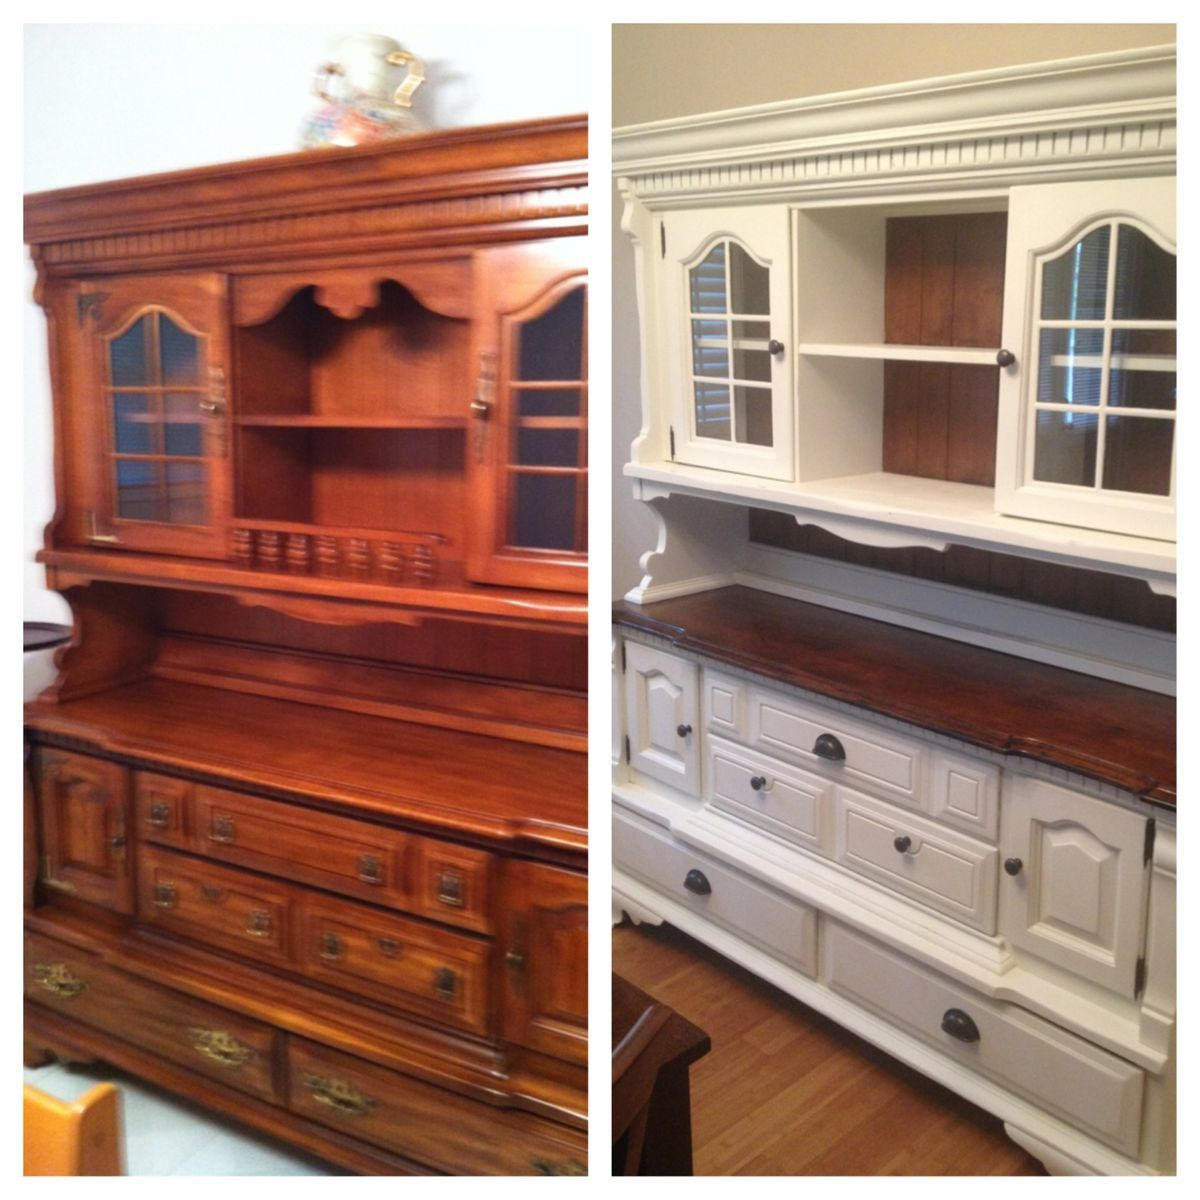 Refurbish Kitchen Cabinets: Pin By Melissa Rose On China Cabinet Makeover